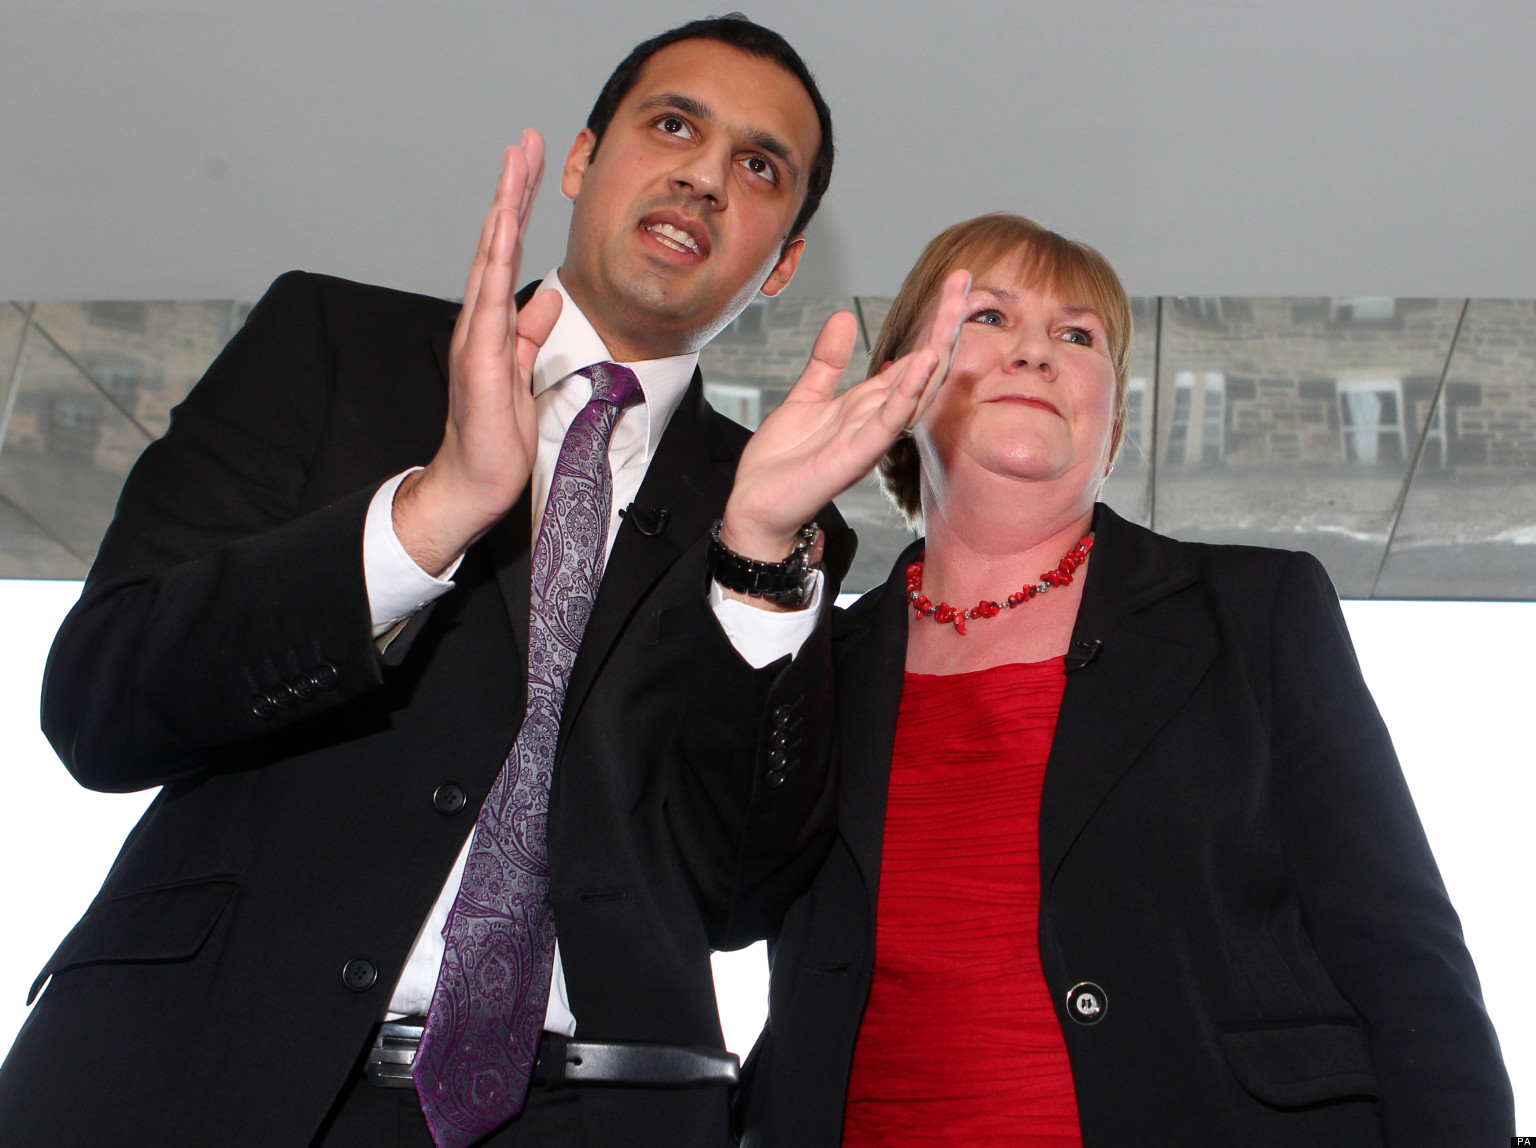 Scottish Labour Party leader named